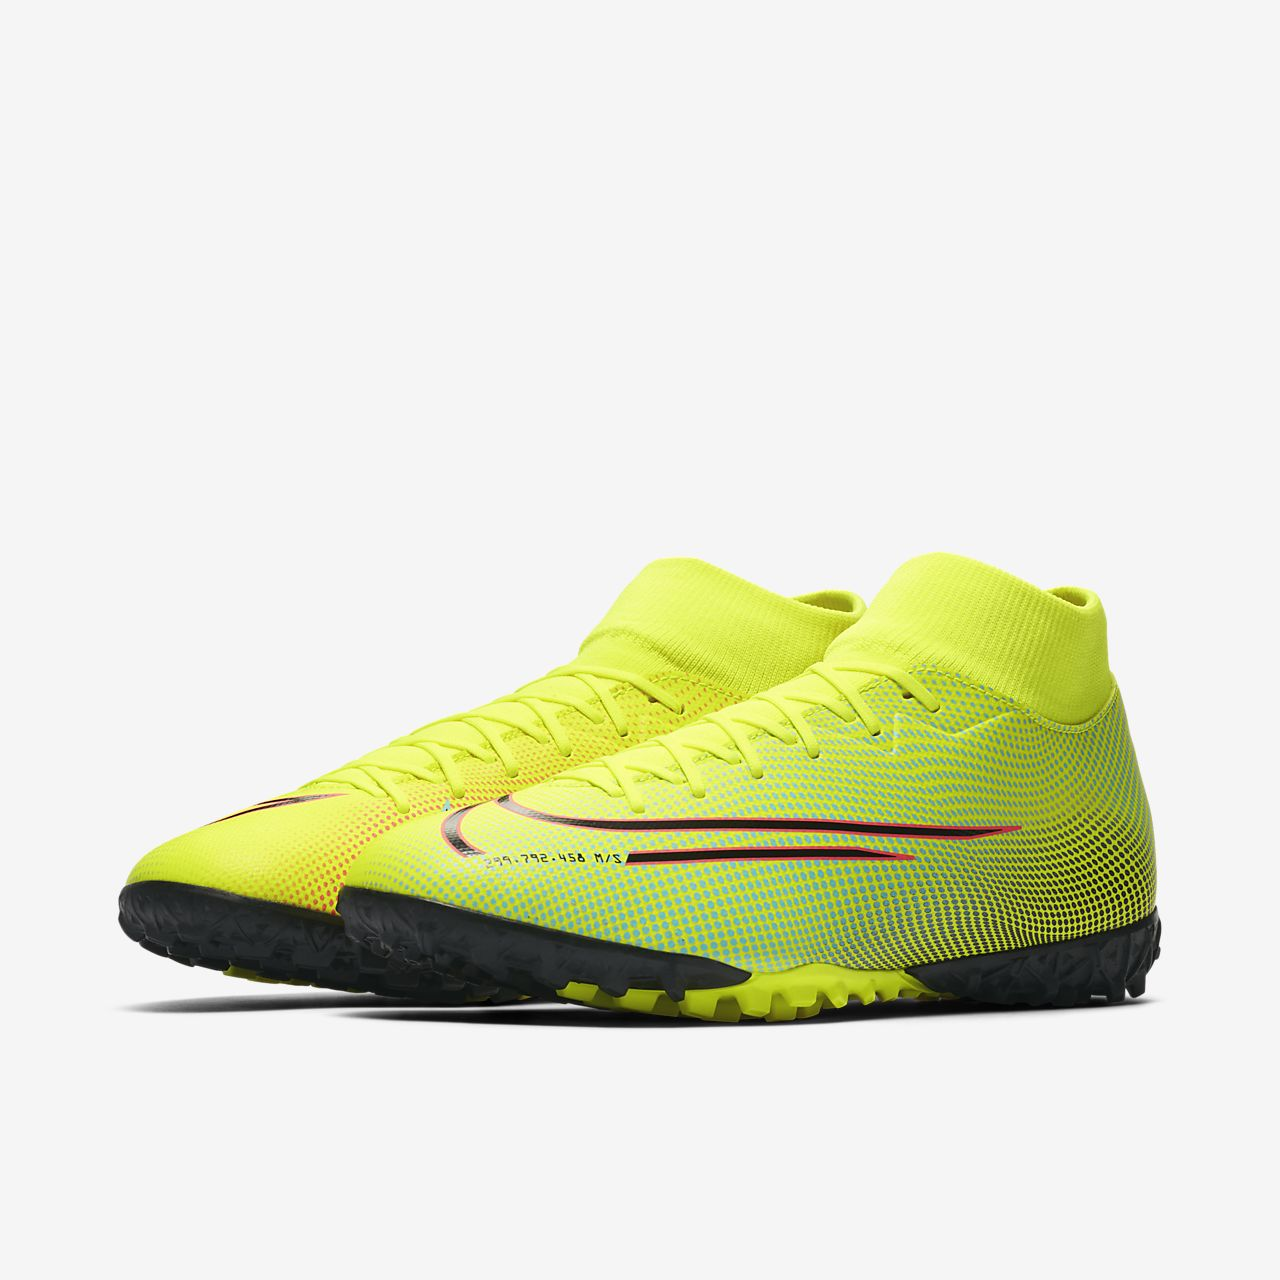 Nike Mercurial Superfly 7 Elite MDS TF Artificial Turf